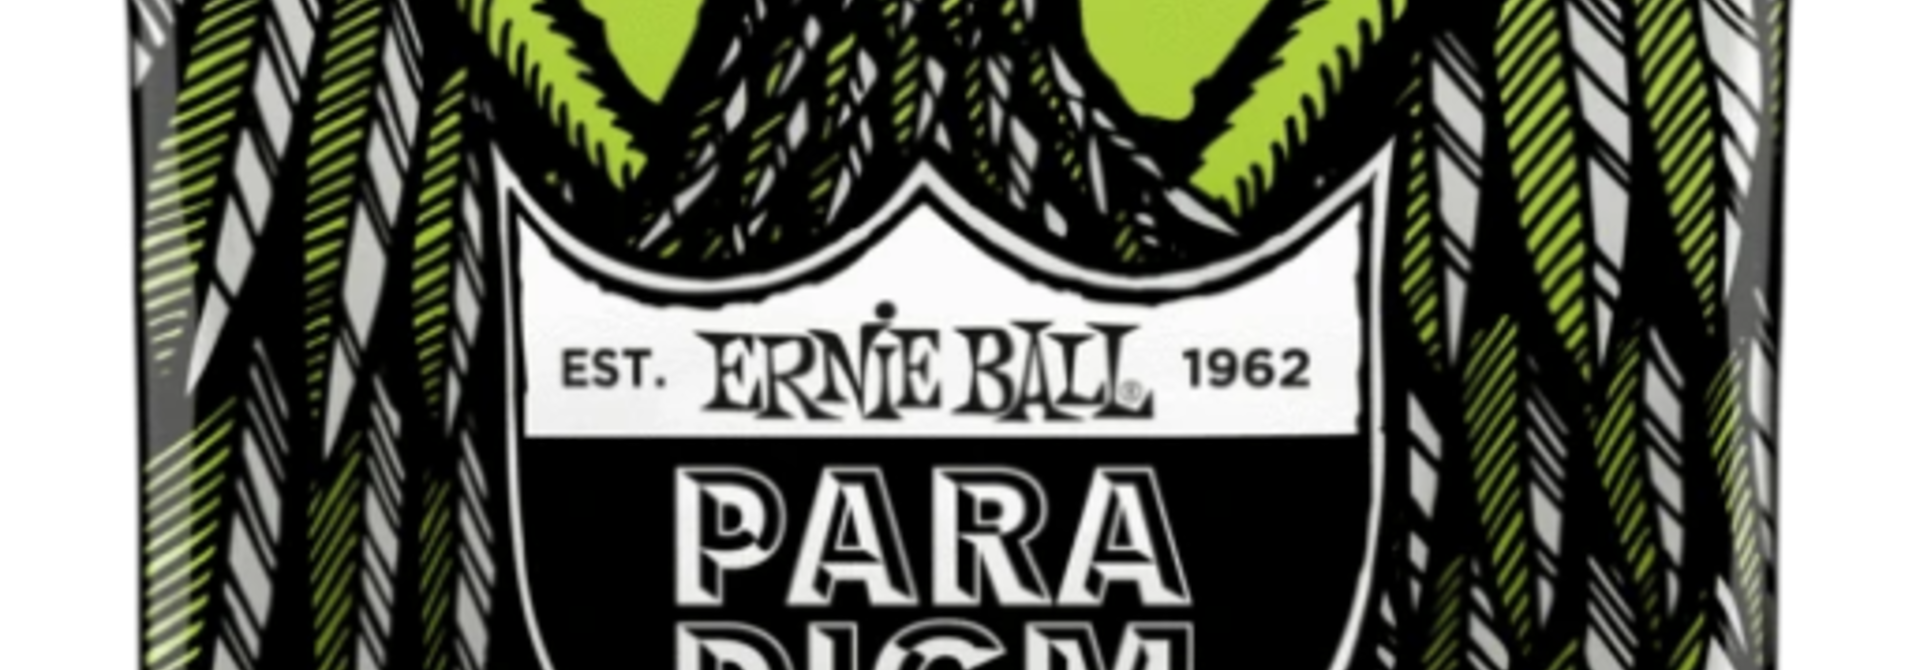 Ernie Ball Paradigm Regular Slinky Guitar Strings (10-46) 2021